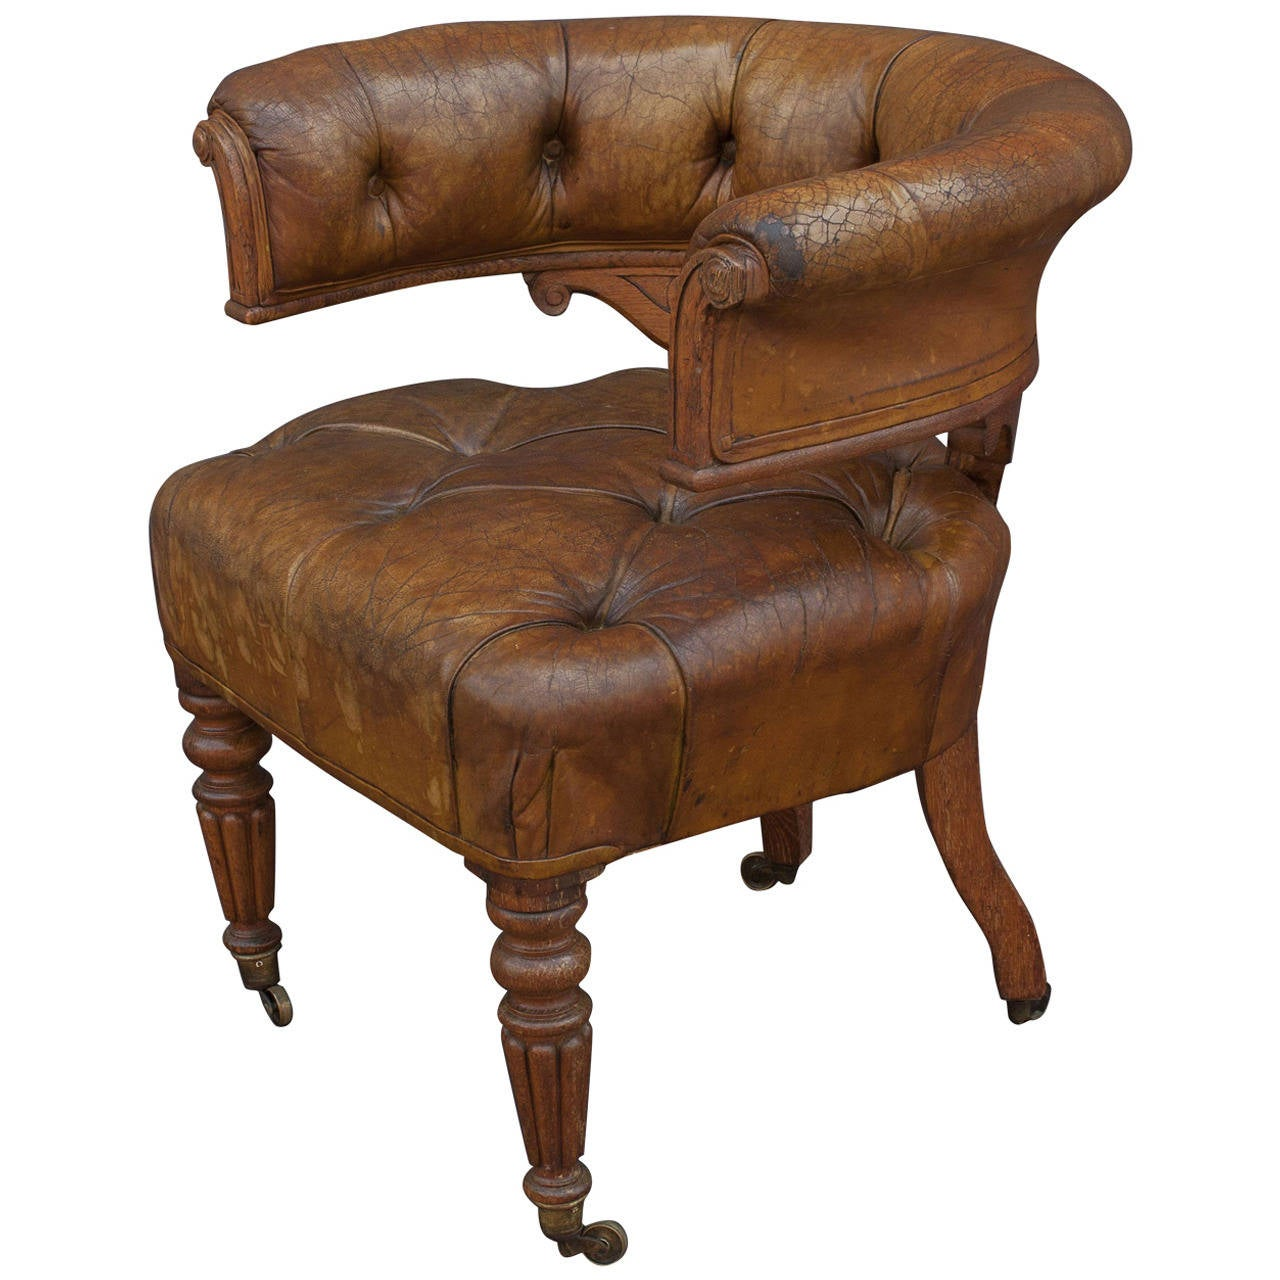 English Tufted Leather Desk Chair At 1stdibs. Full resolution‎  photo, nominally Width 1280 Height 1280 pixels, photo with #462818.